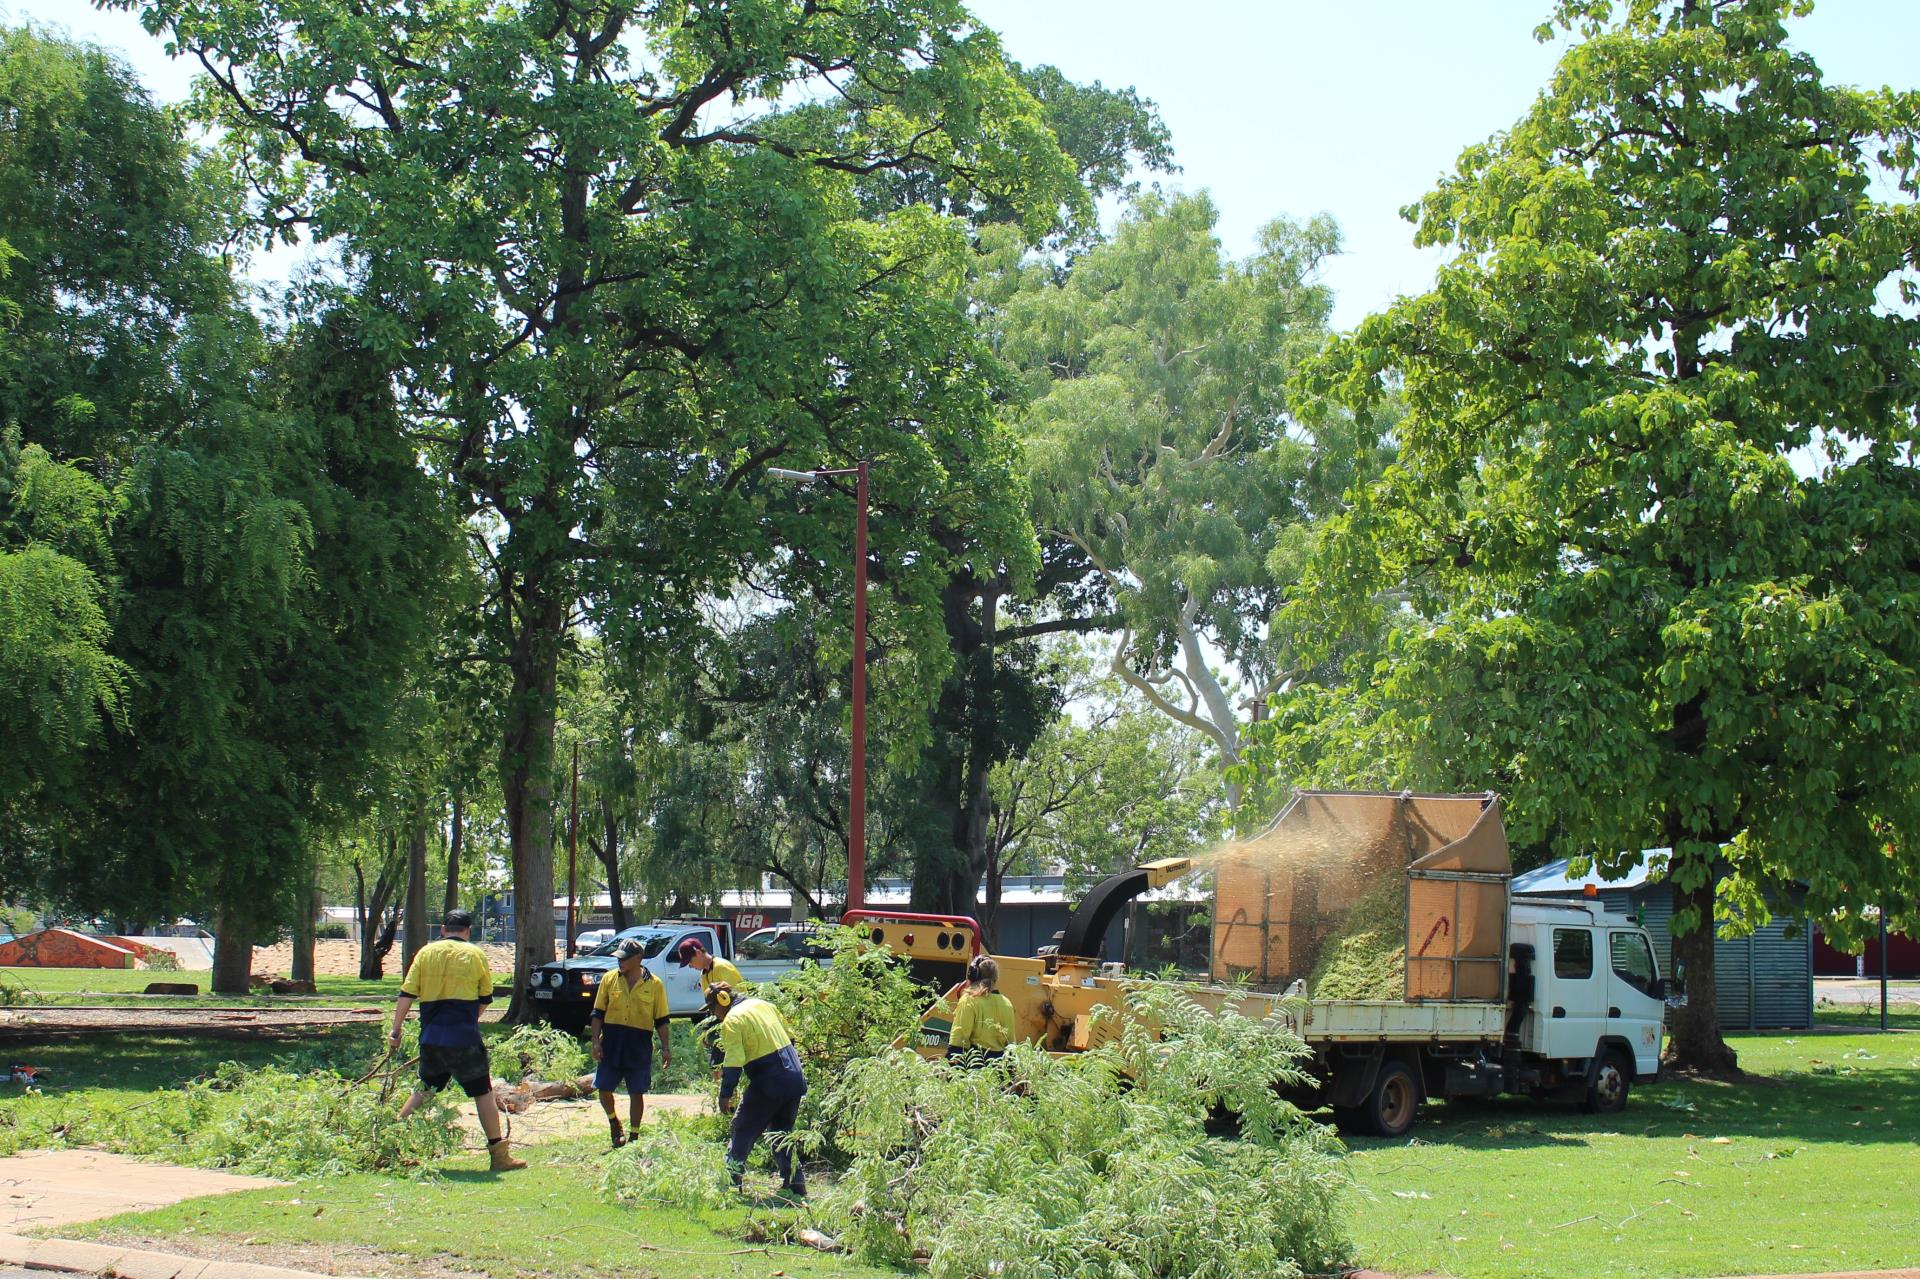 Shire staff begin clean-up of fallen trees and debris in response to